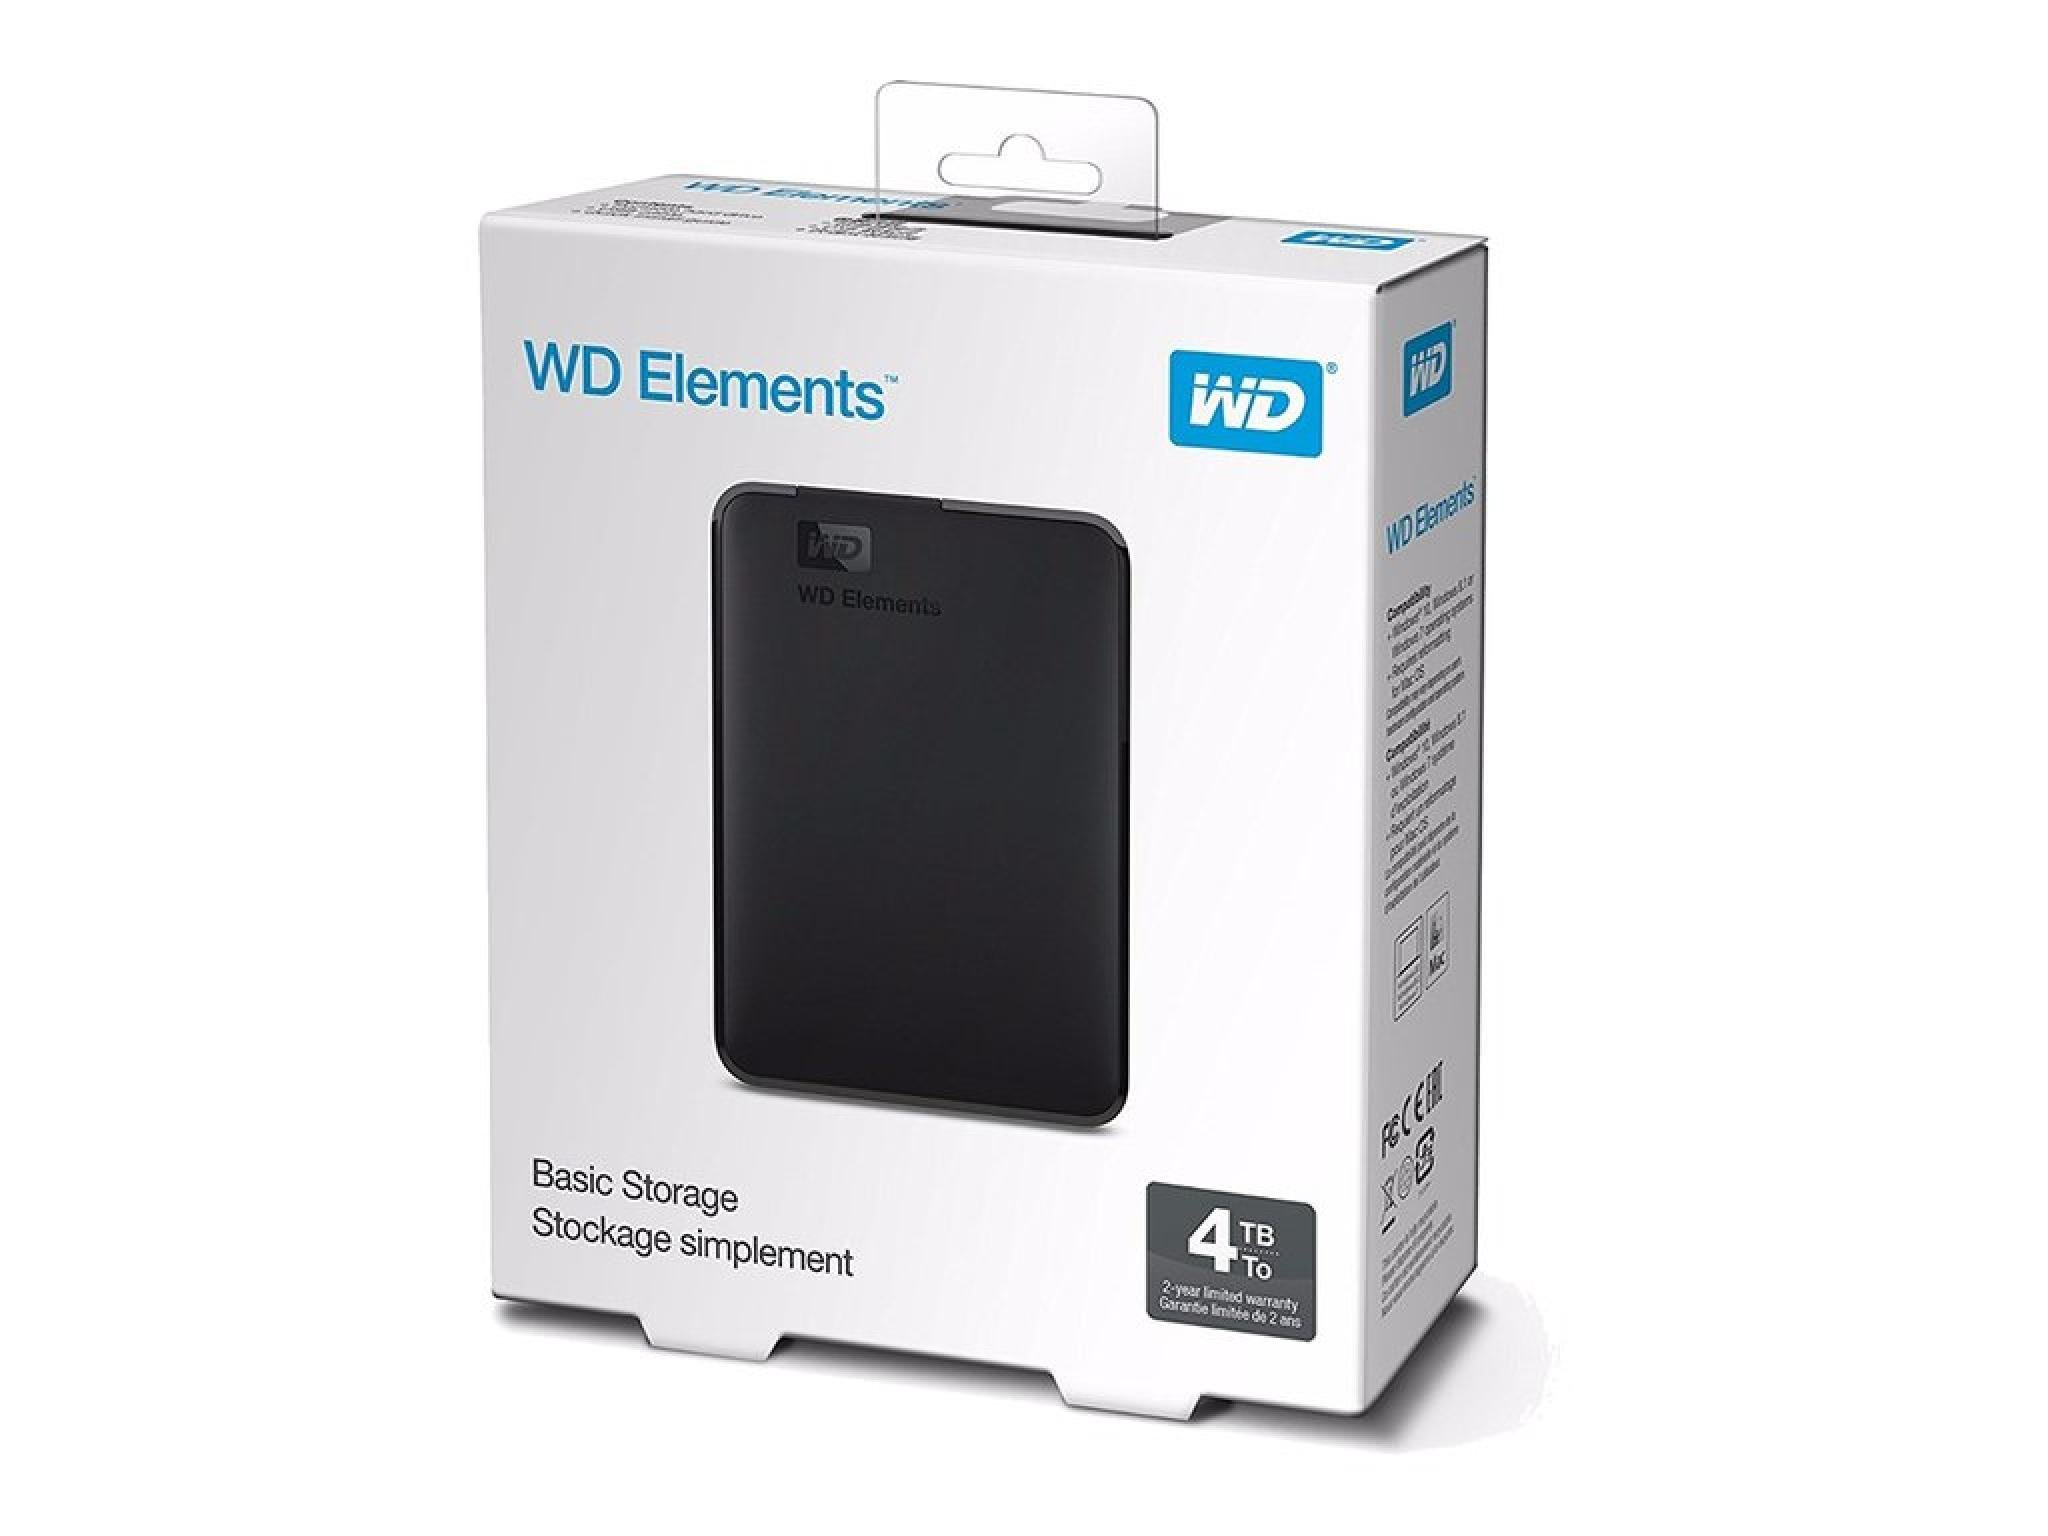 disco-rigido-externo-wd-elements-4tb-usb-30-1972-2405